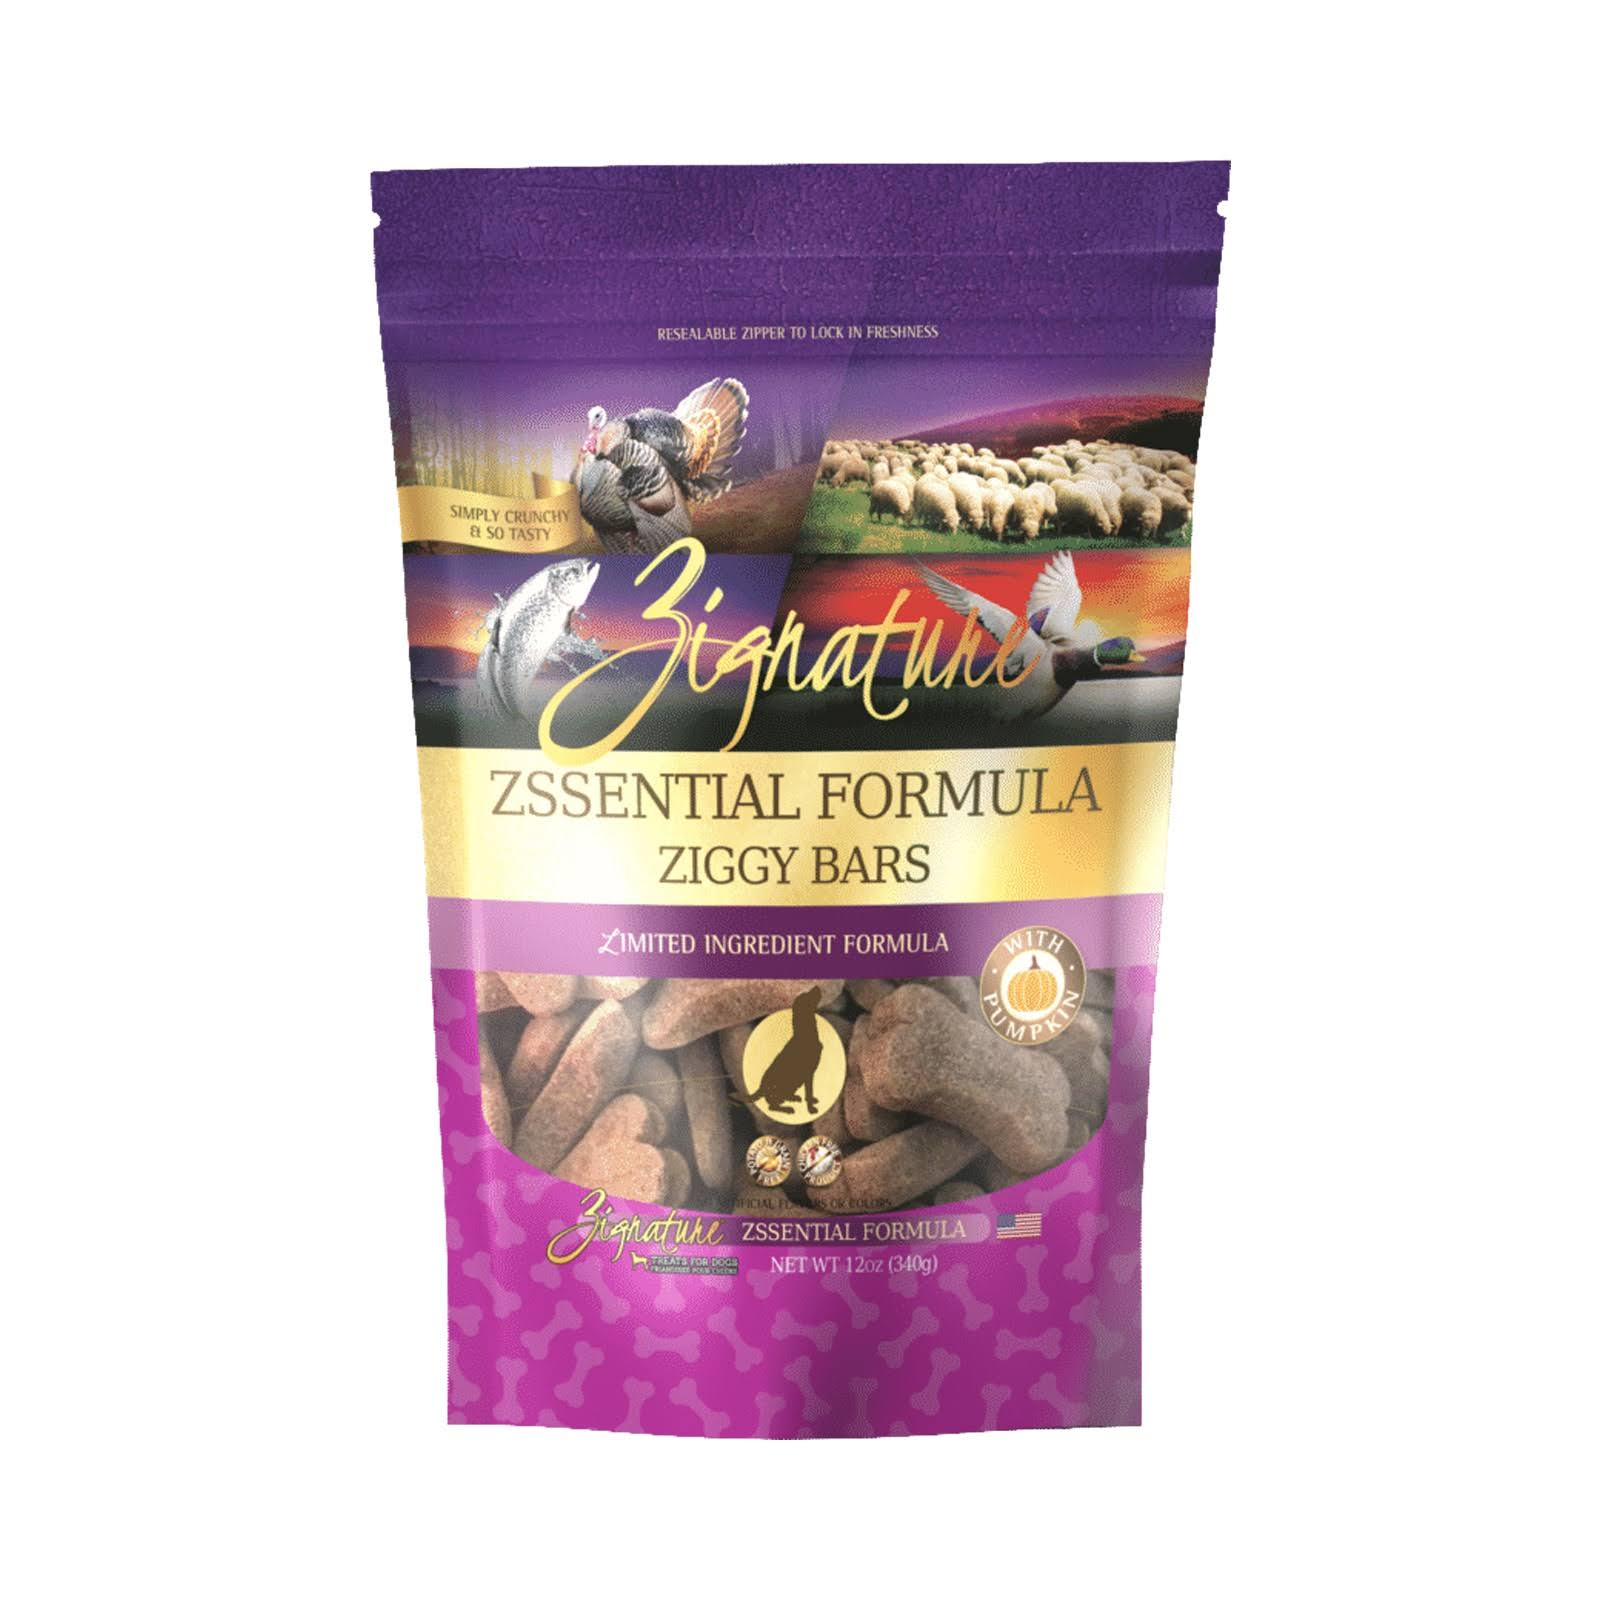 Zignature Zssential Ziggy Bars Dog Treats - 12 oz